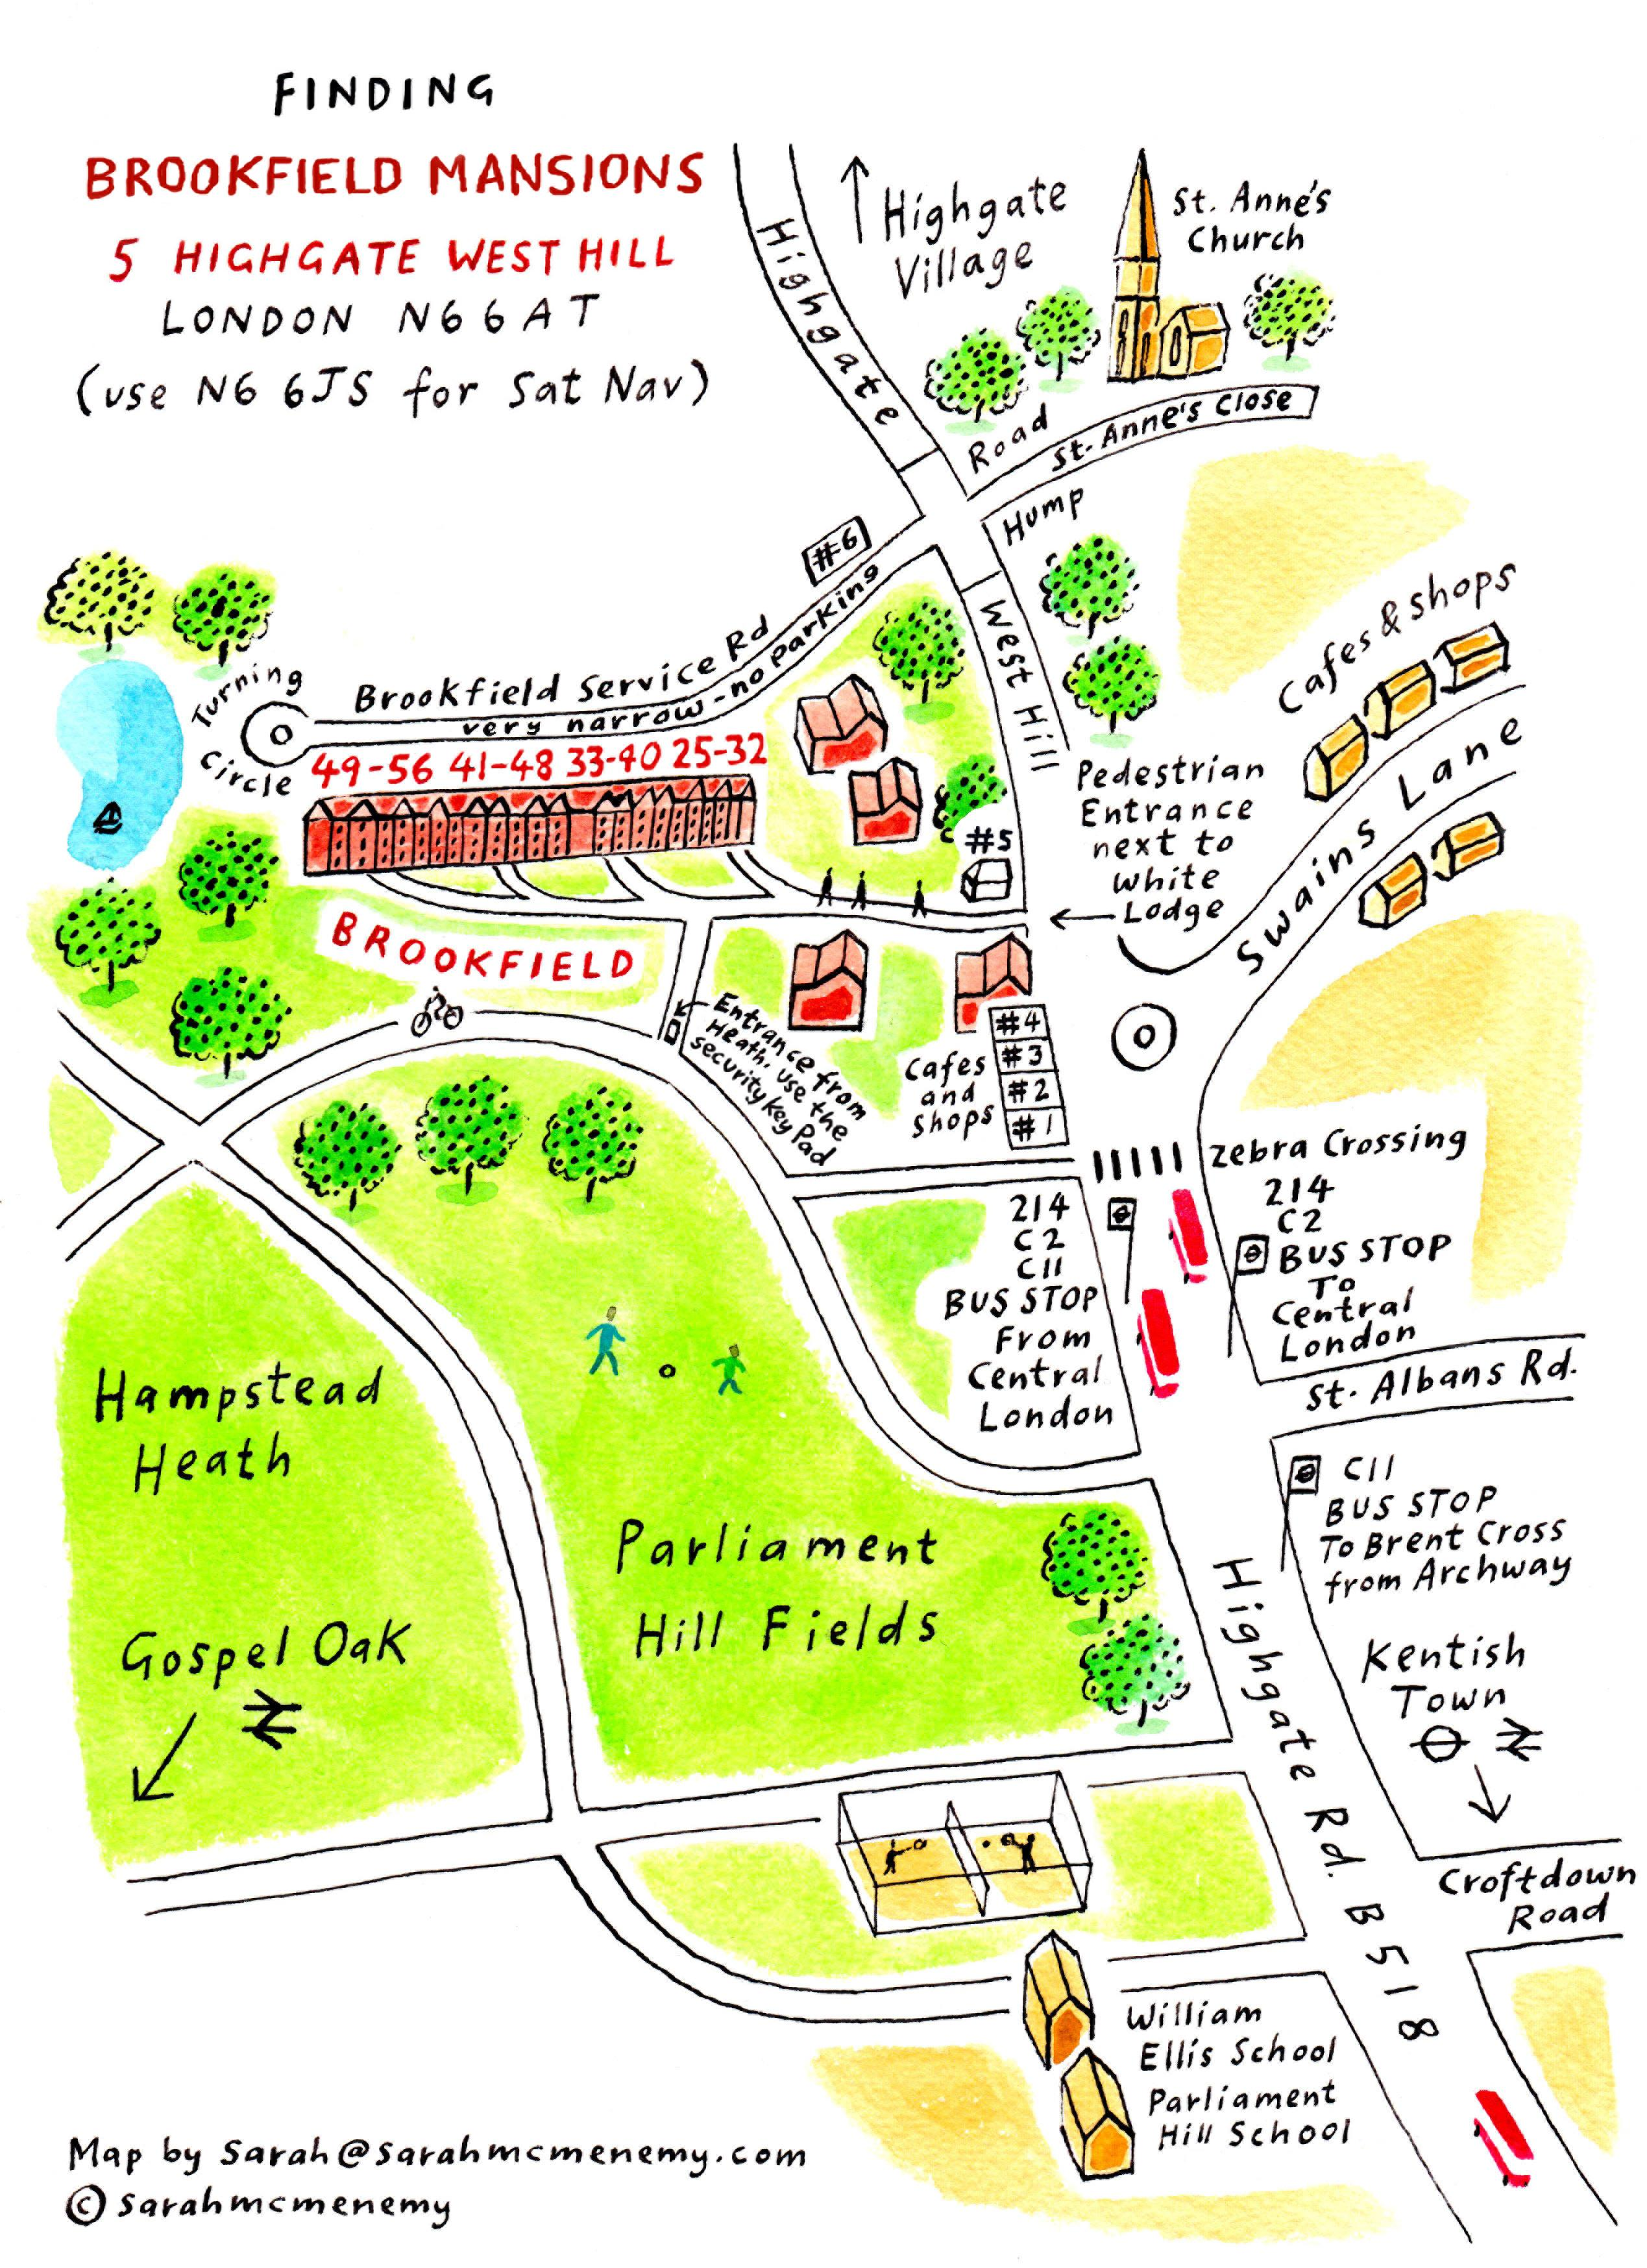 London Map Directions.Map And Directions Brookfield Mansions Freehold Ltd